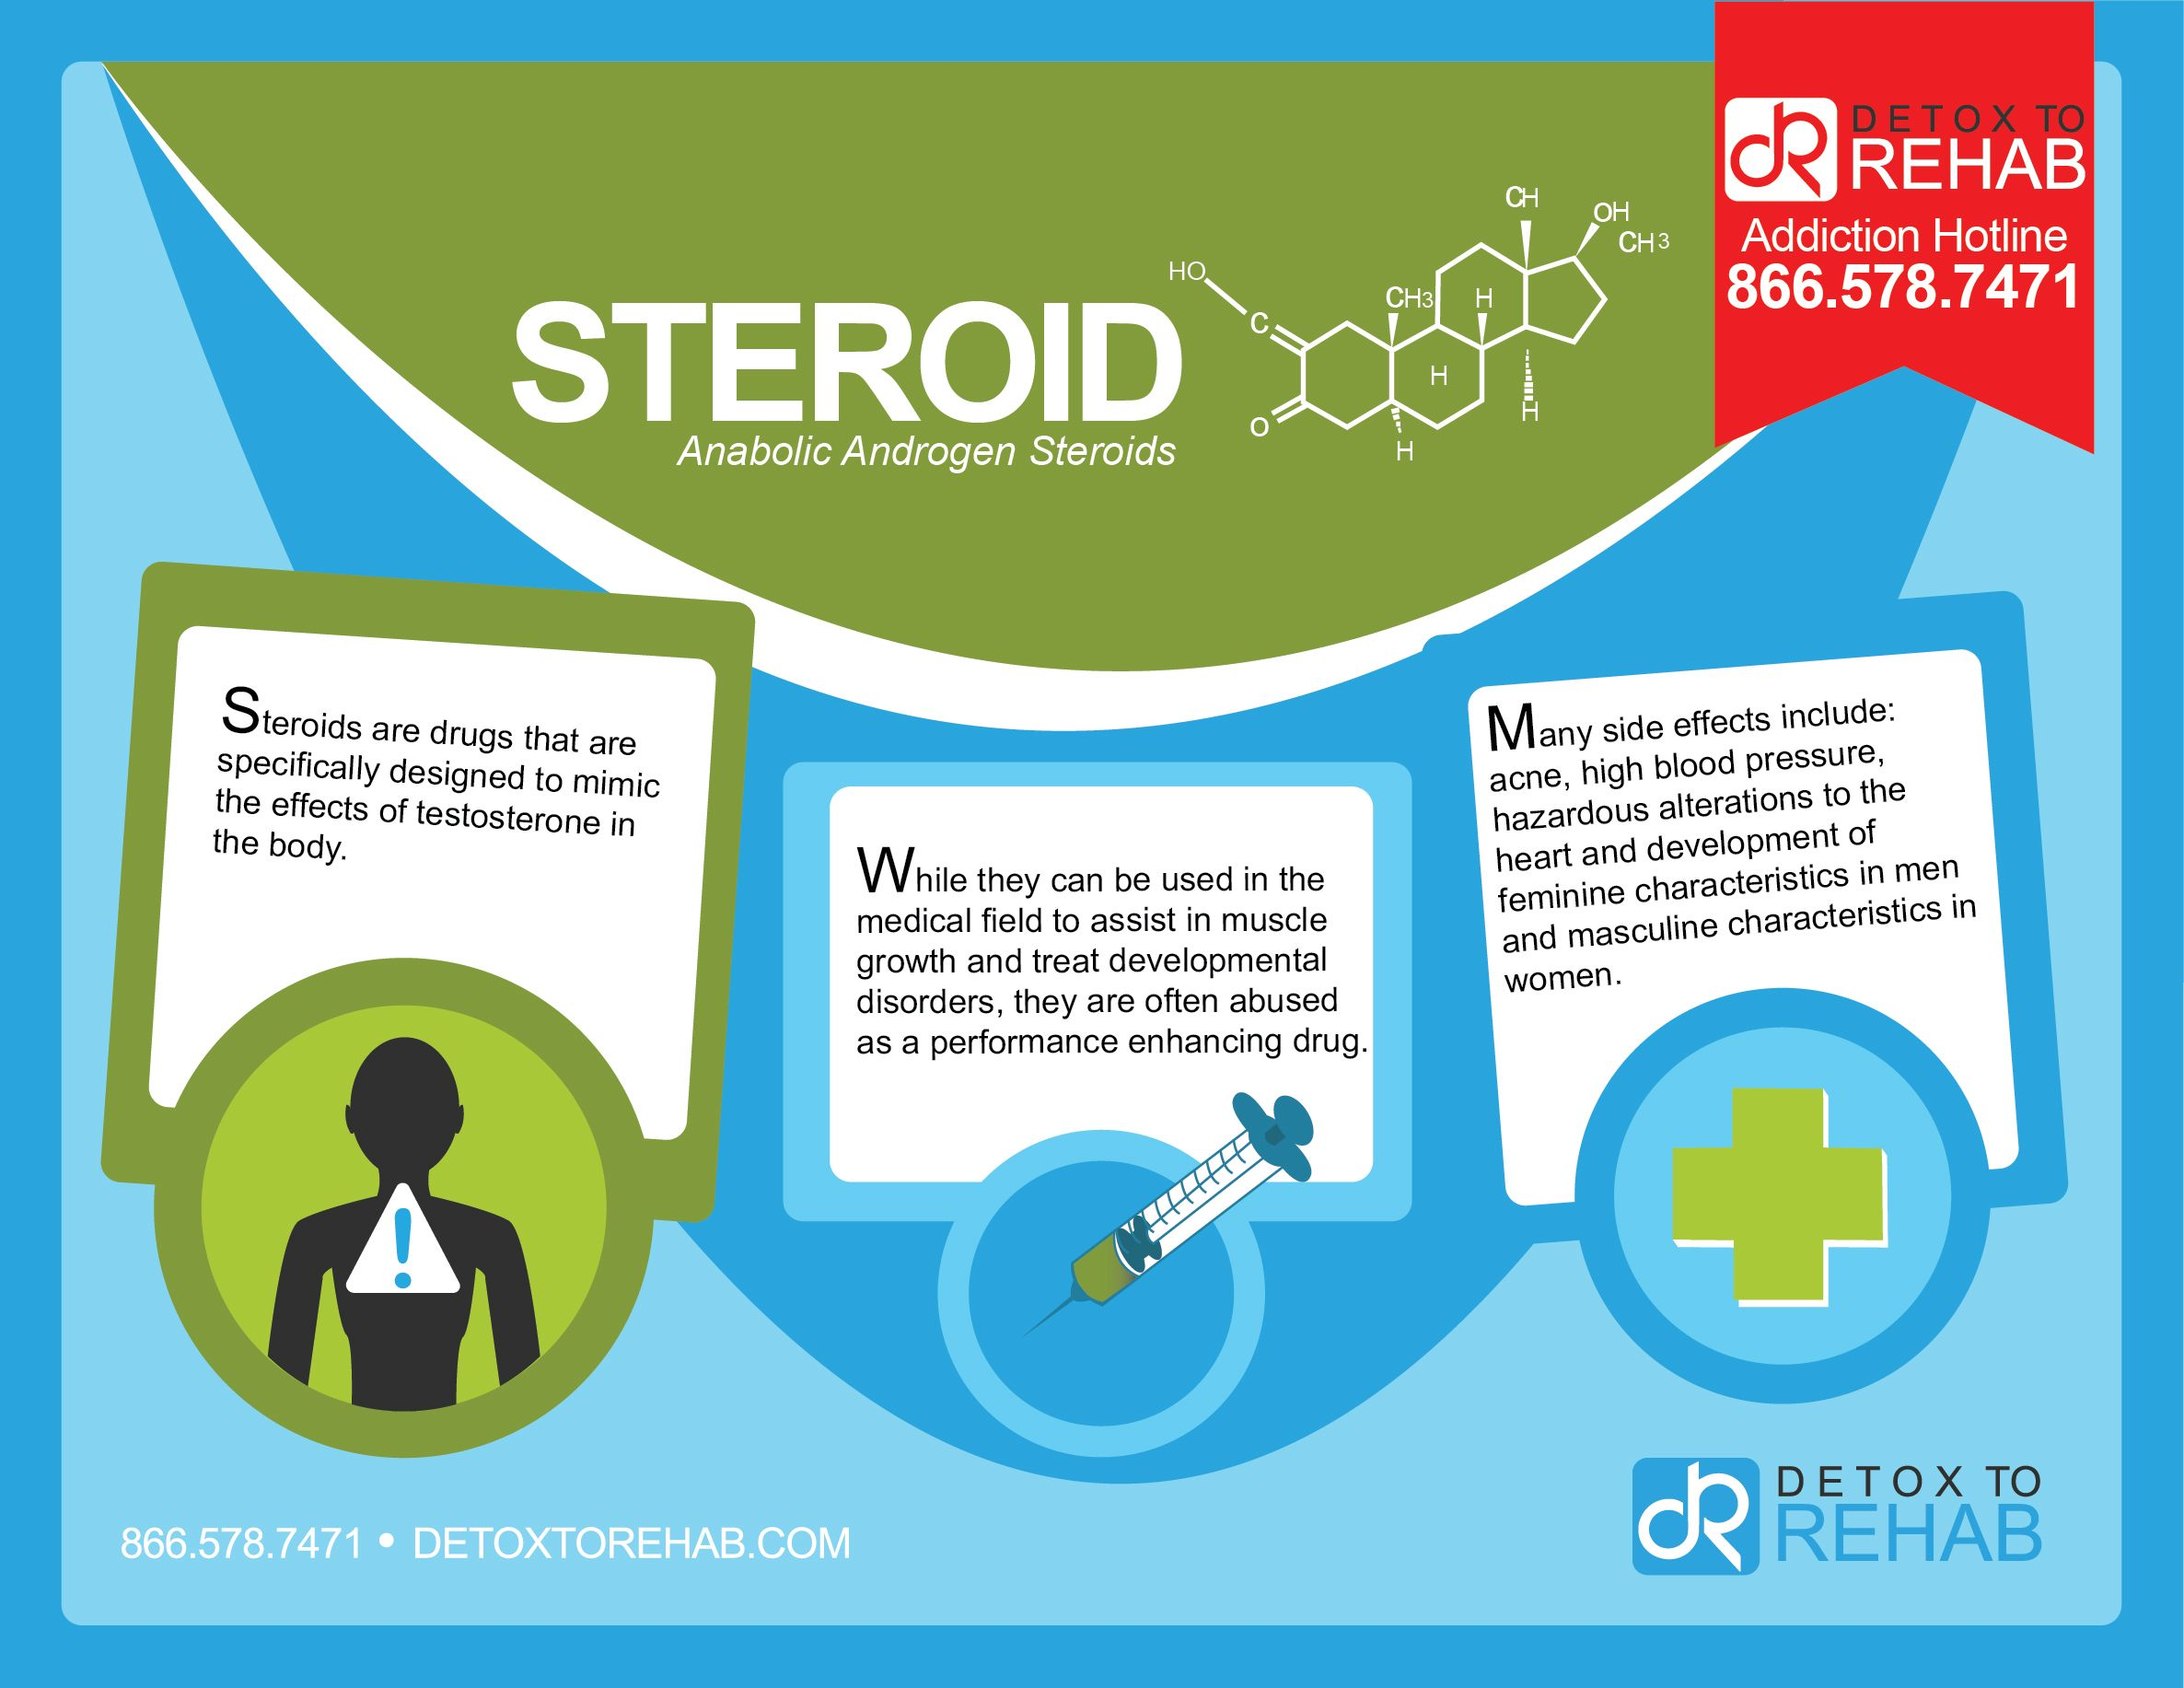 What Are the Dangers of Anabolic Steroids and the Side Effects of Use?